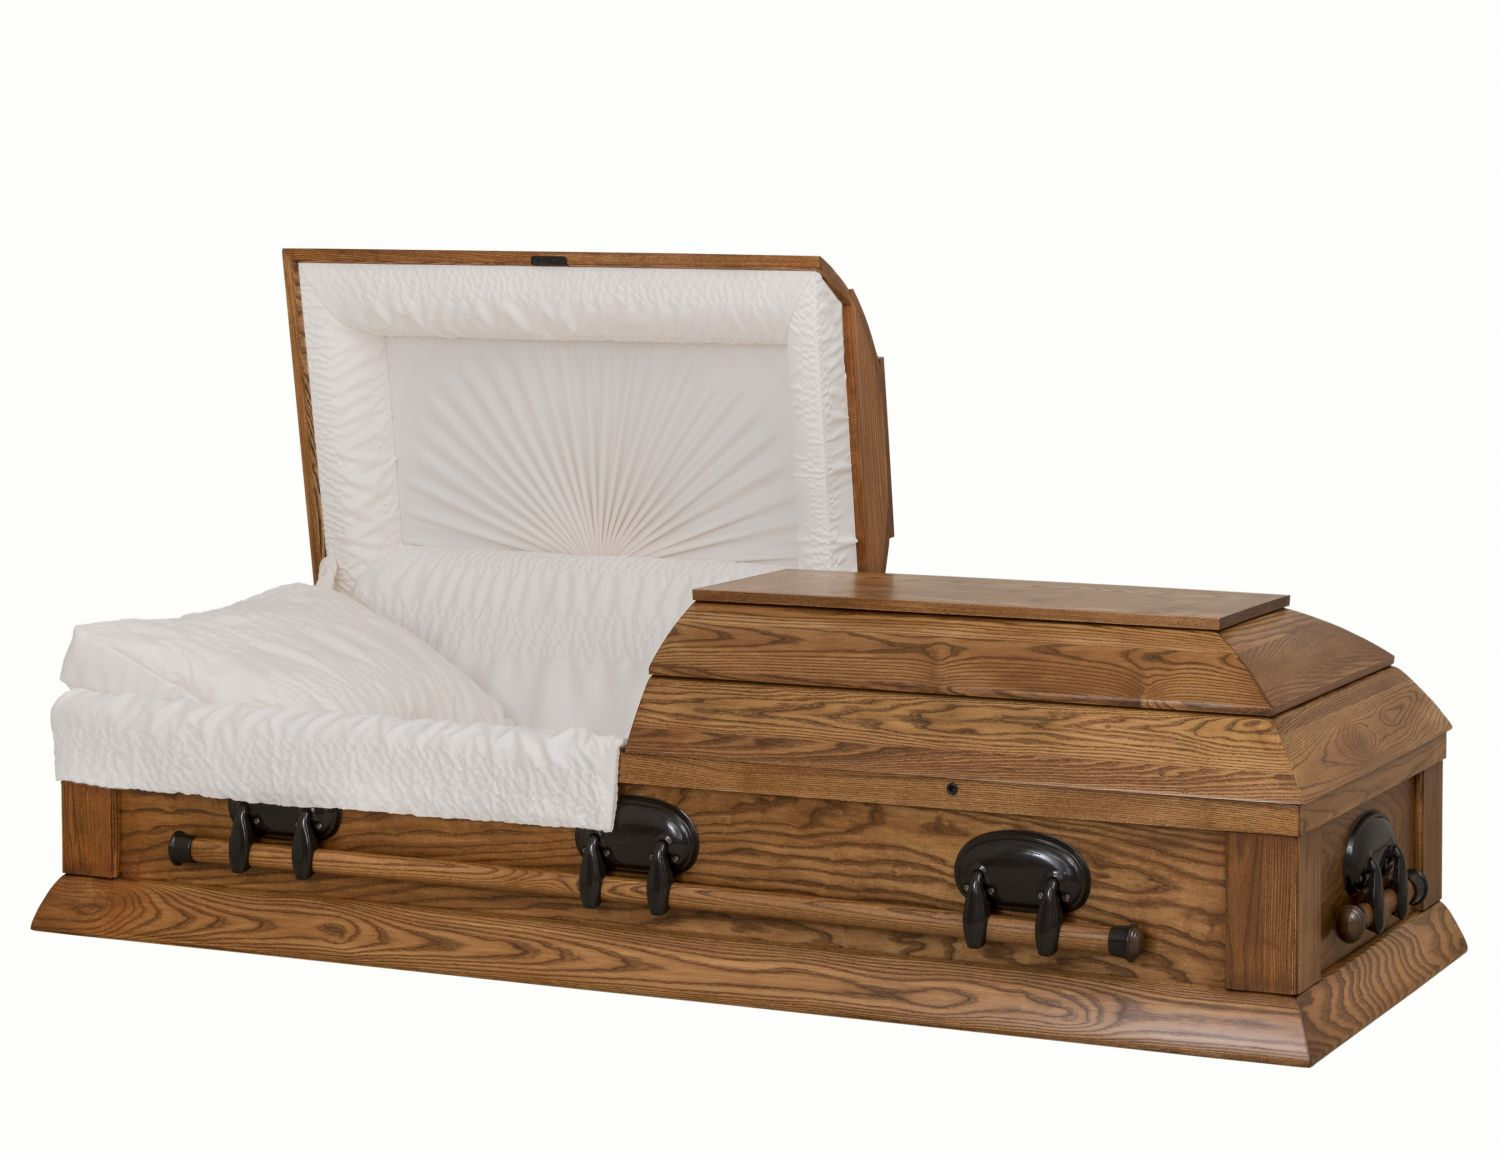 Concept Caskets 40217-00028-N ASH CASKET OPEN GRAIN  CREPE  DARK MEDIUM  WOOD FIBER NO H1111-4    3 X 1 BRONZE